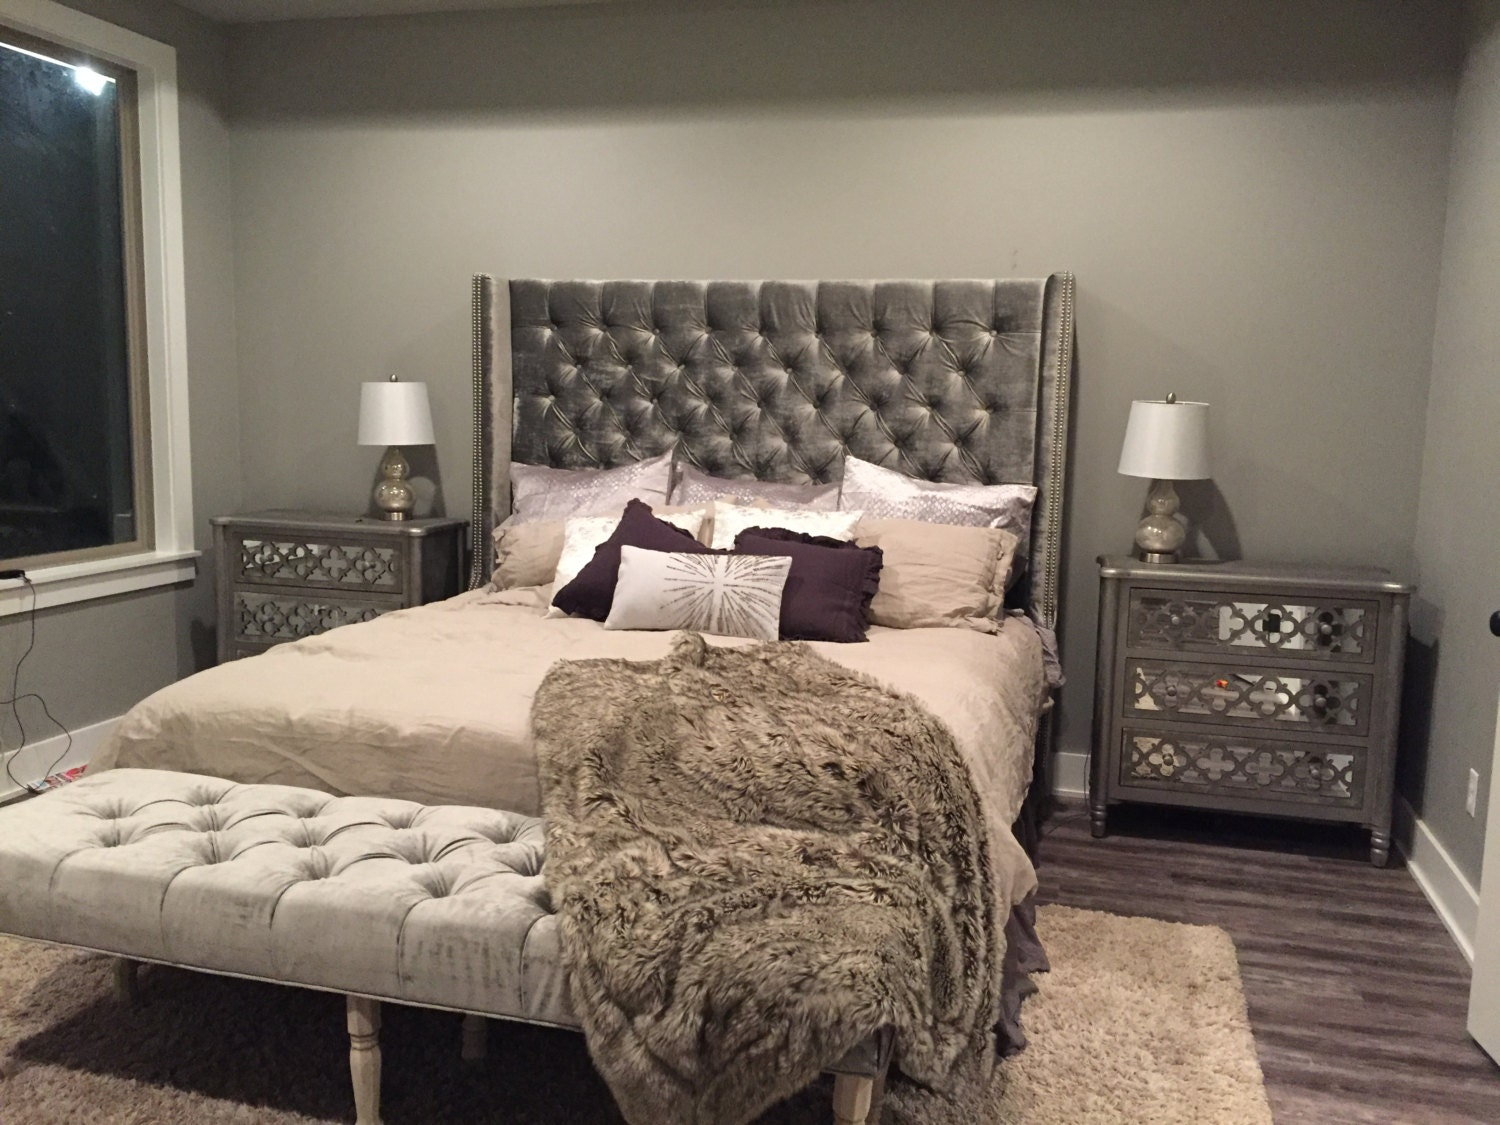 Diamond Tufted Wingback Headboard And Bench Set King Extra